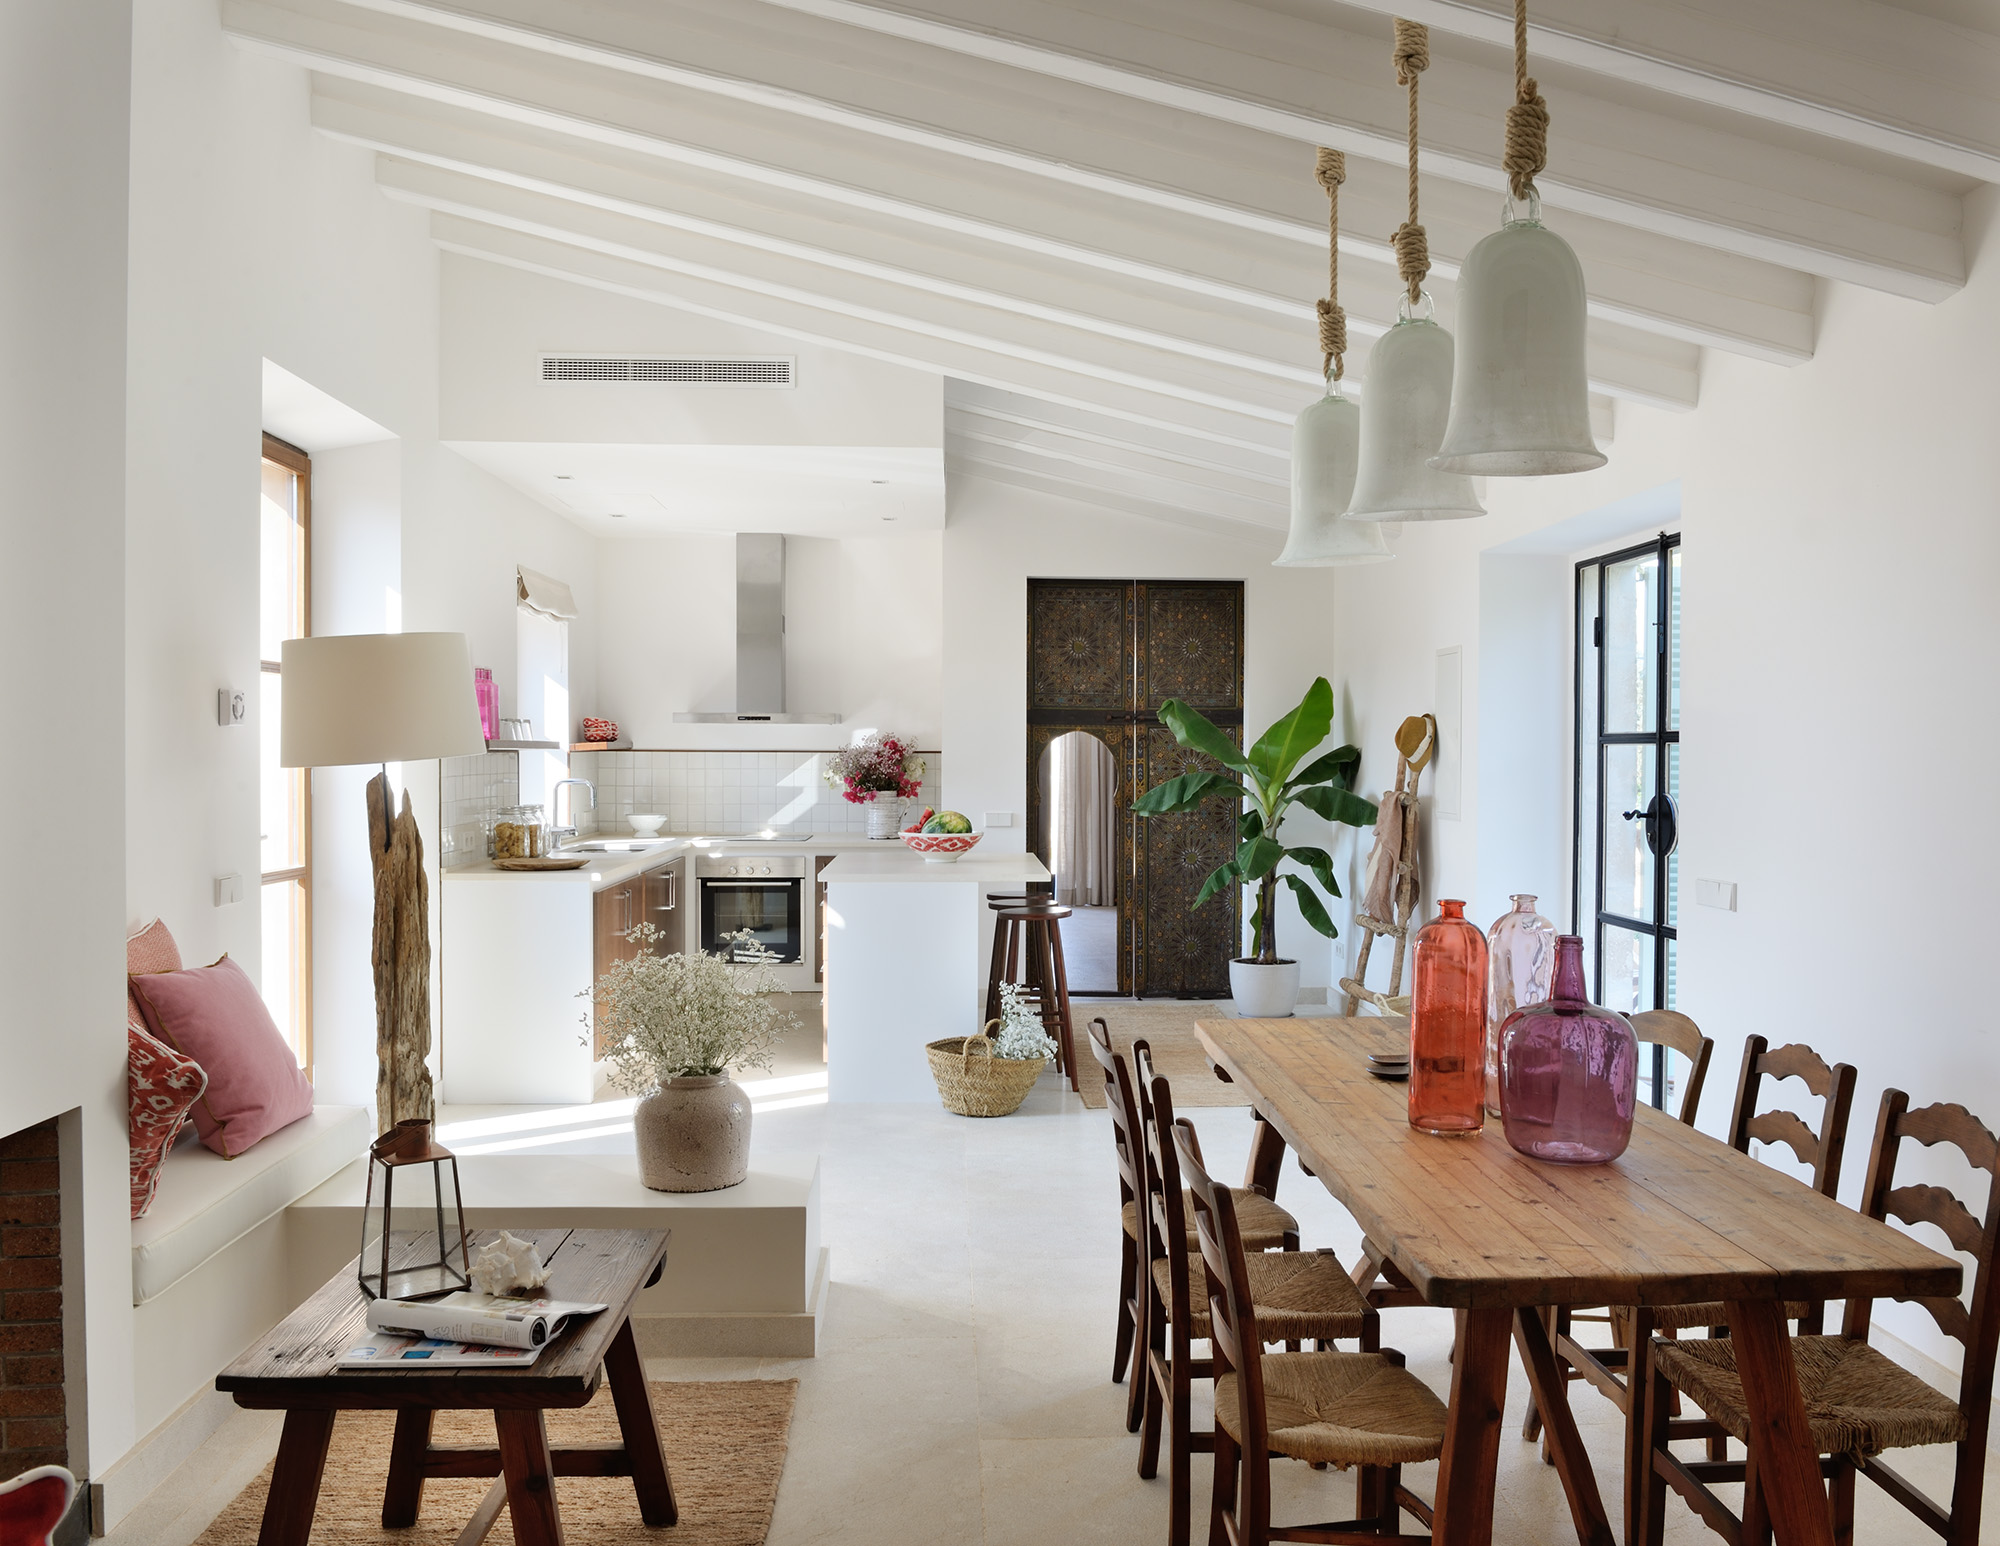 Images of Kitchen Suits - Garden And Kitchen